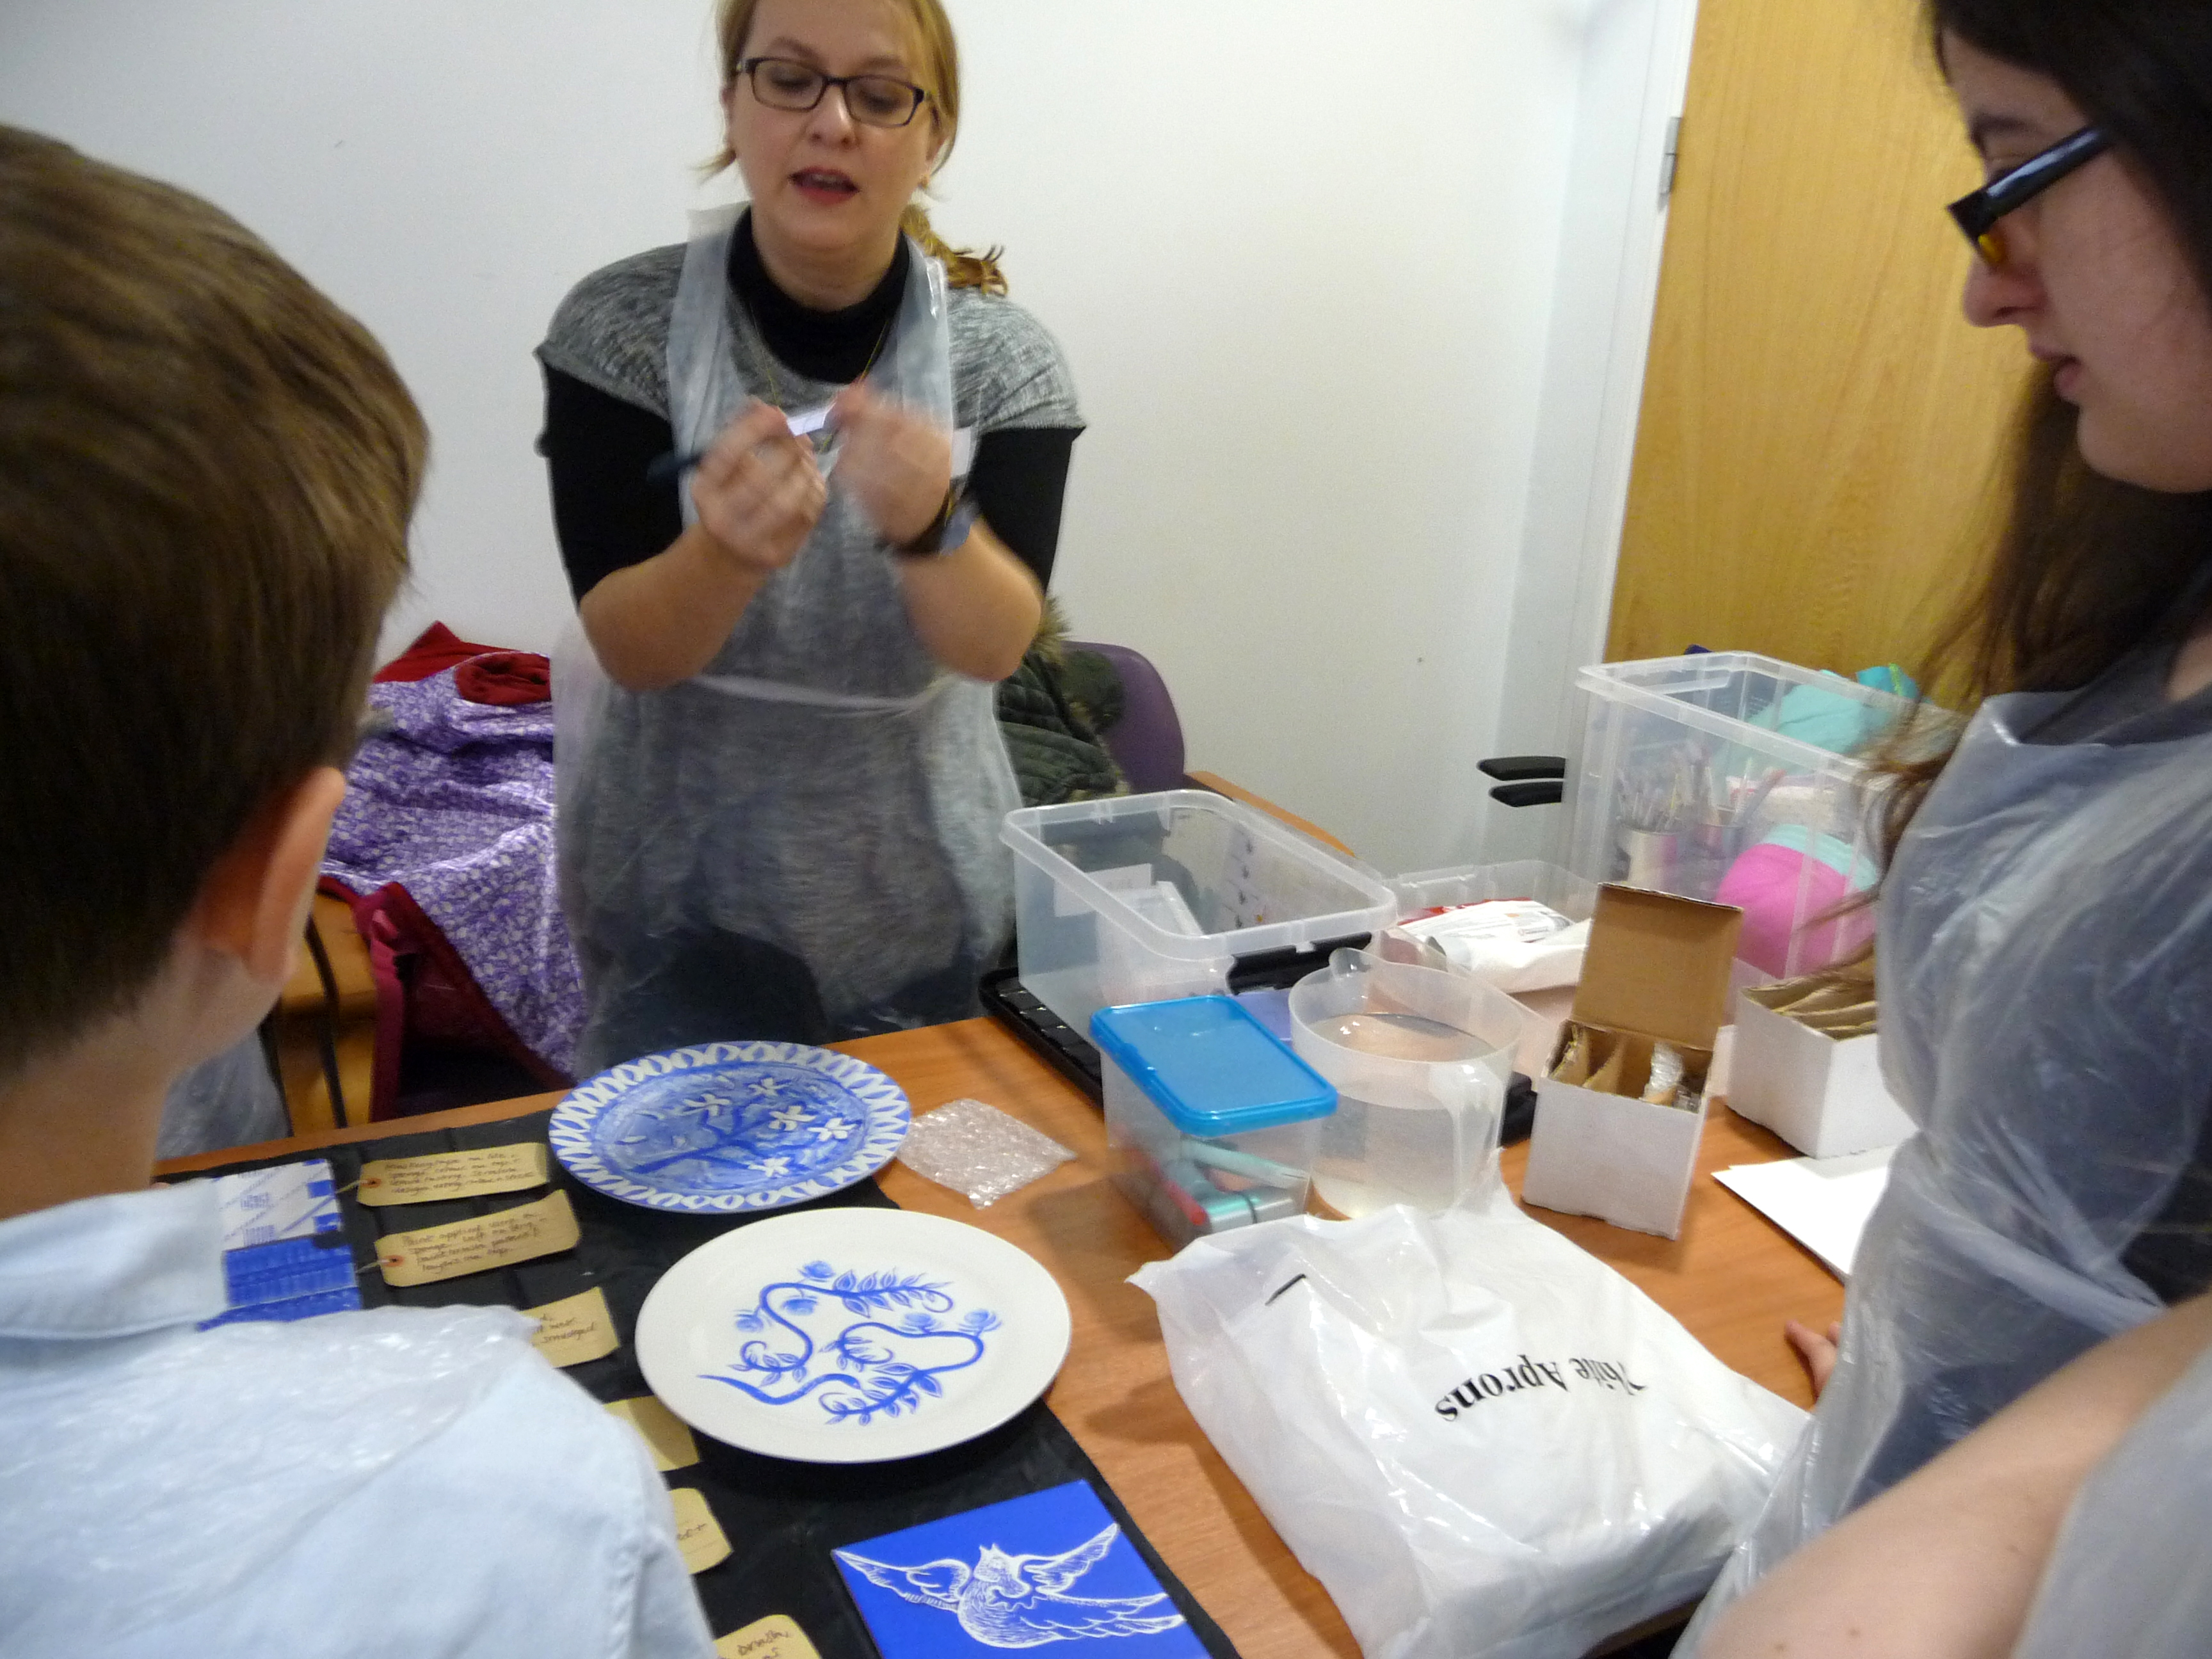 Juliet Staines is showing our YE group some painting techniques